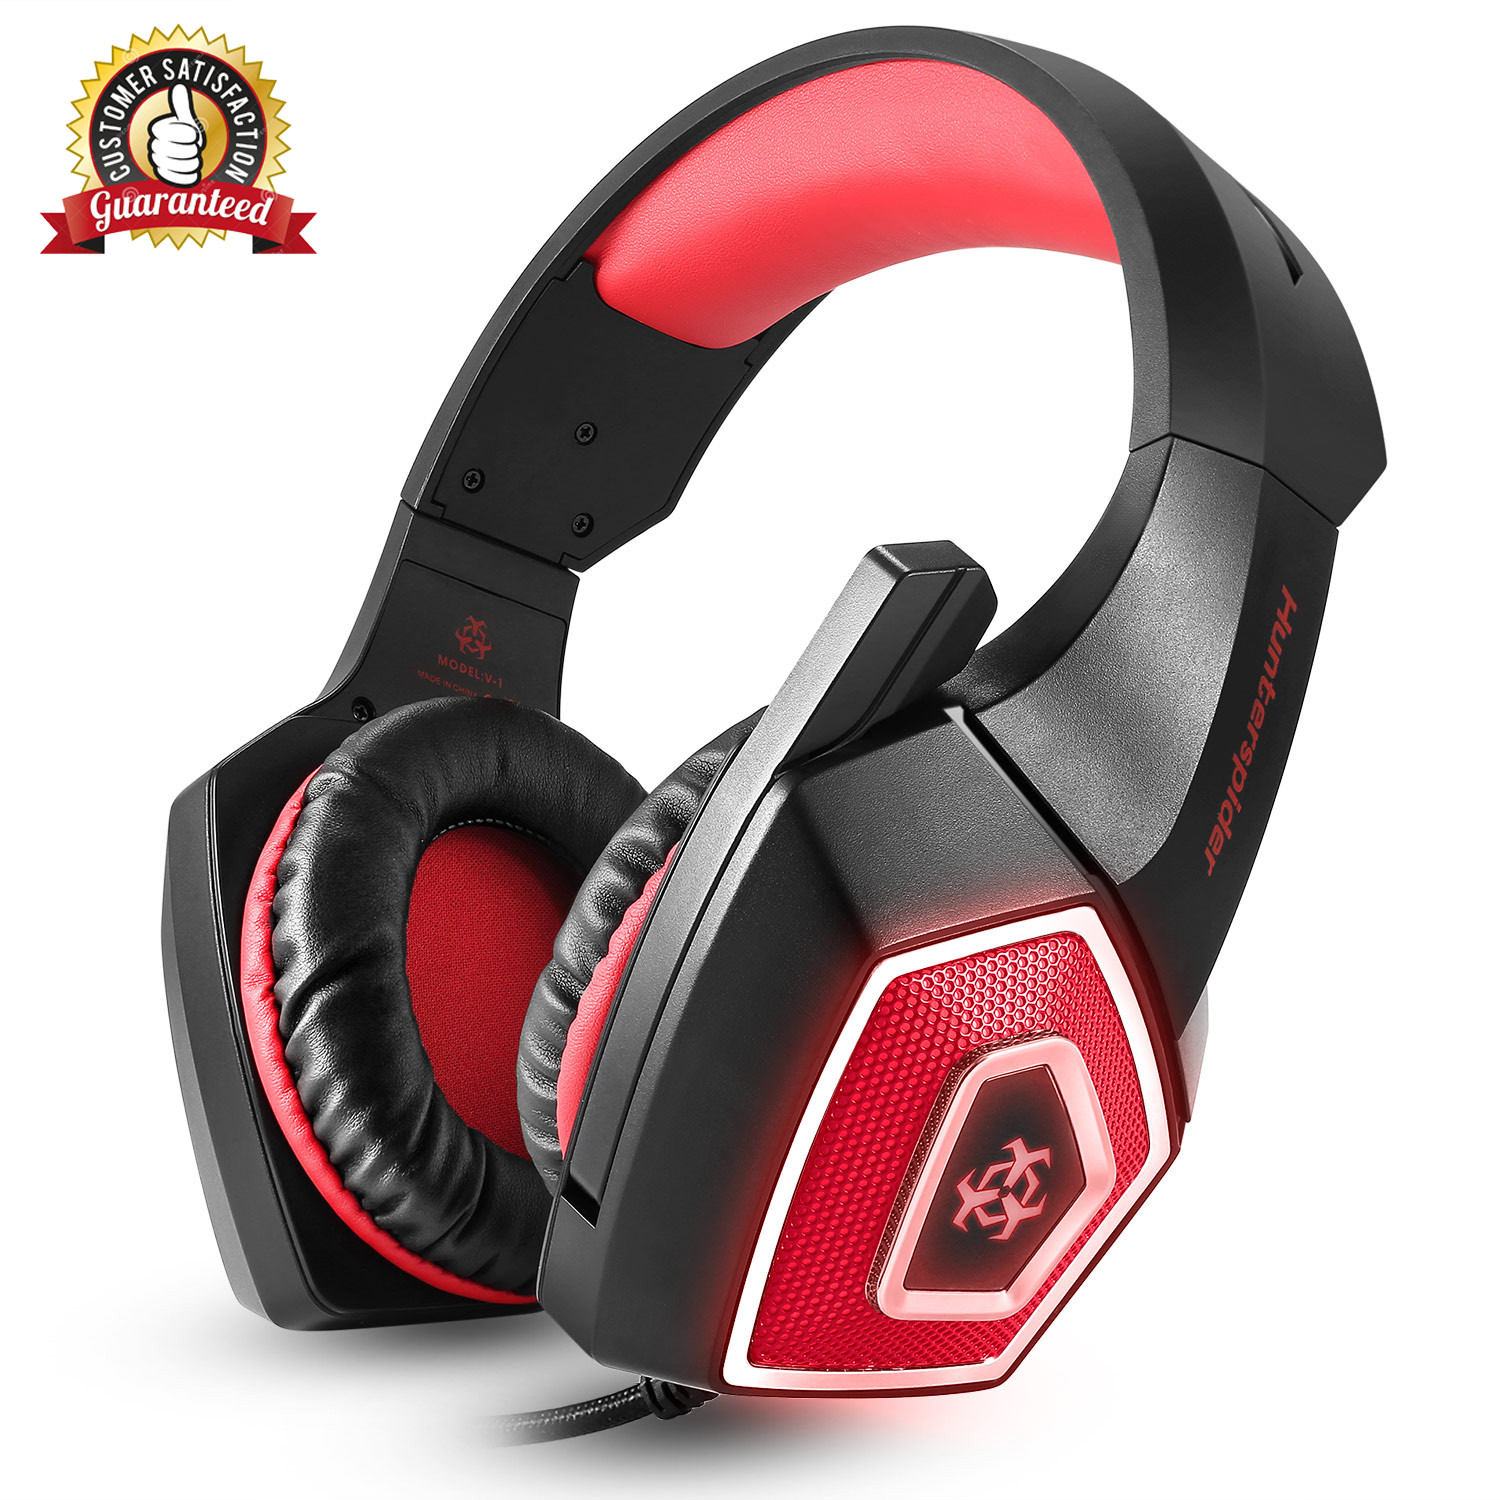 [Newest 2019 Upgraded] Gaming Headset Best for Xbox One, PS4, PC - 7.1 Best Surround Stereo Sound, Noise Cancelling Mic, 3.5mm Soft Breathing Over-Ear Game Headphones